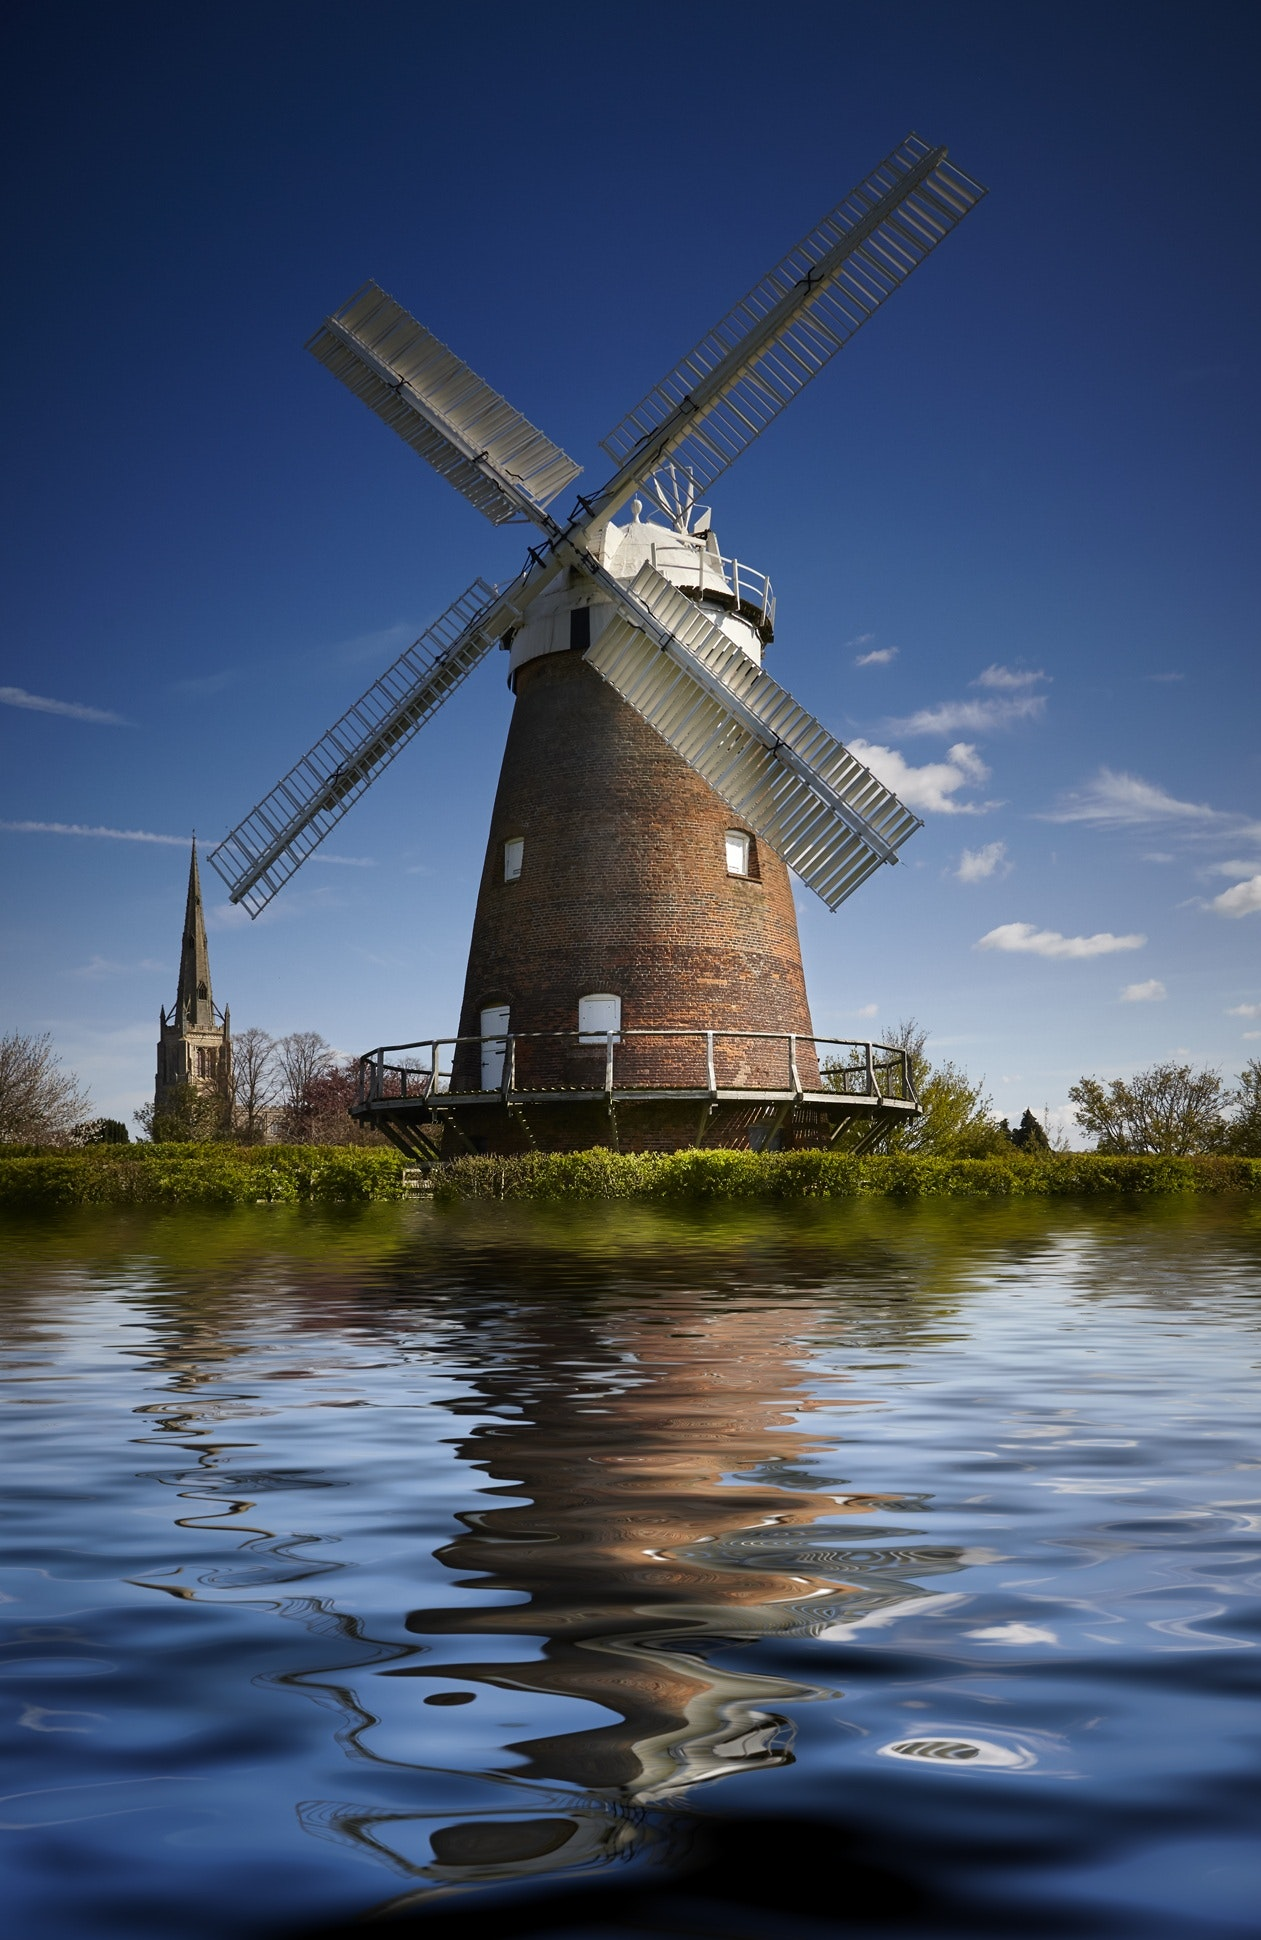 photography of windmill under blue sky during daytime free stock photo